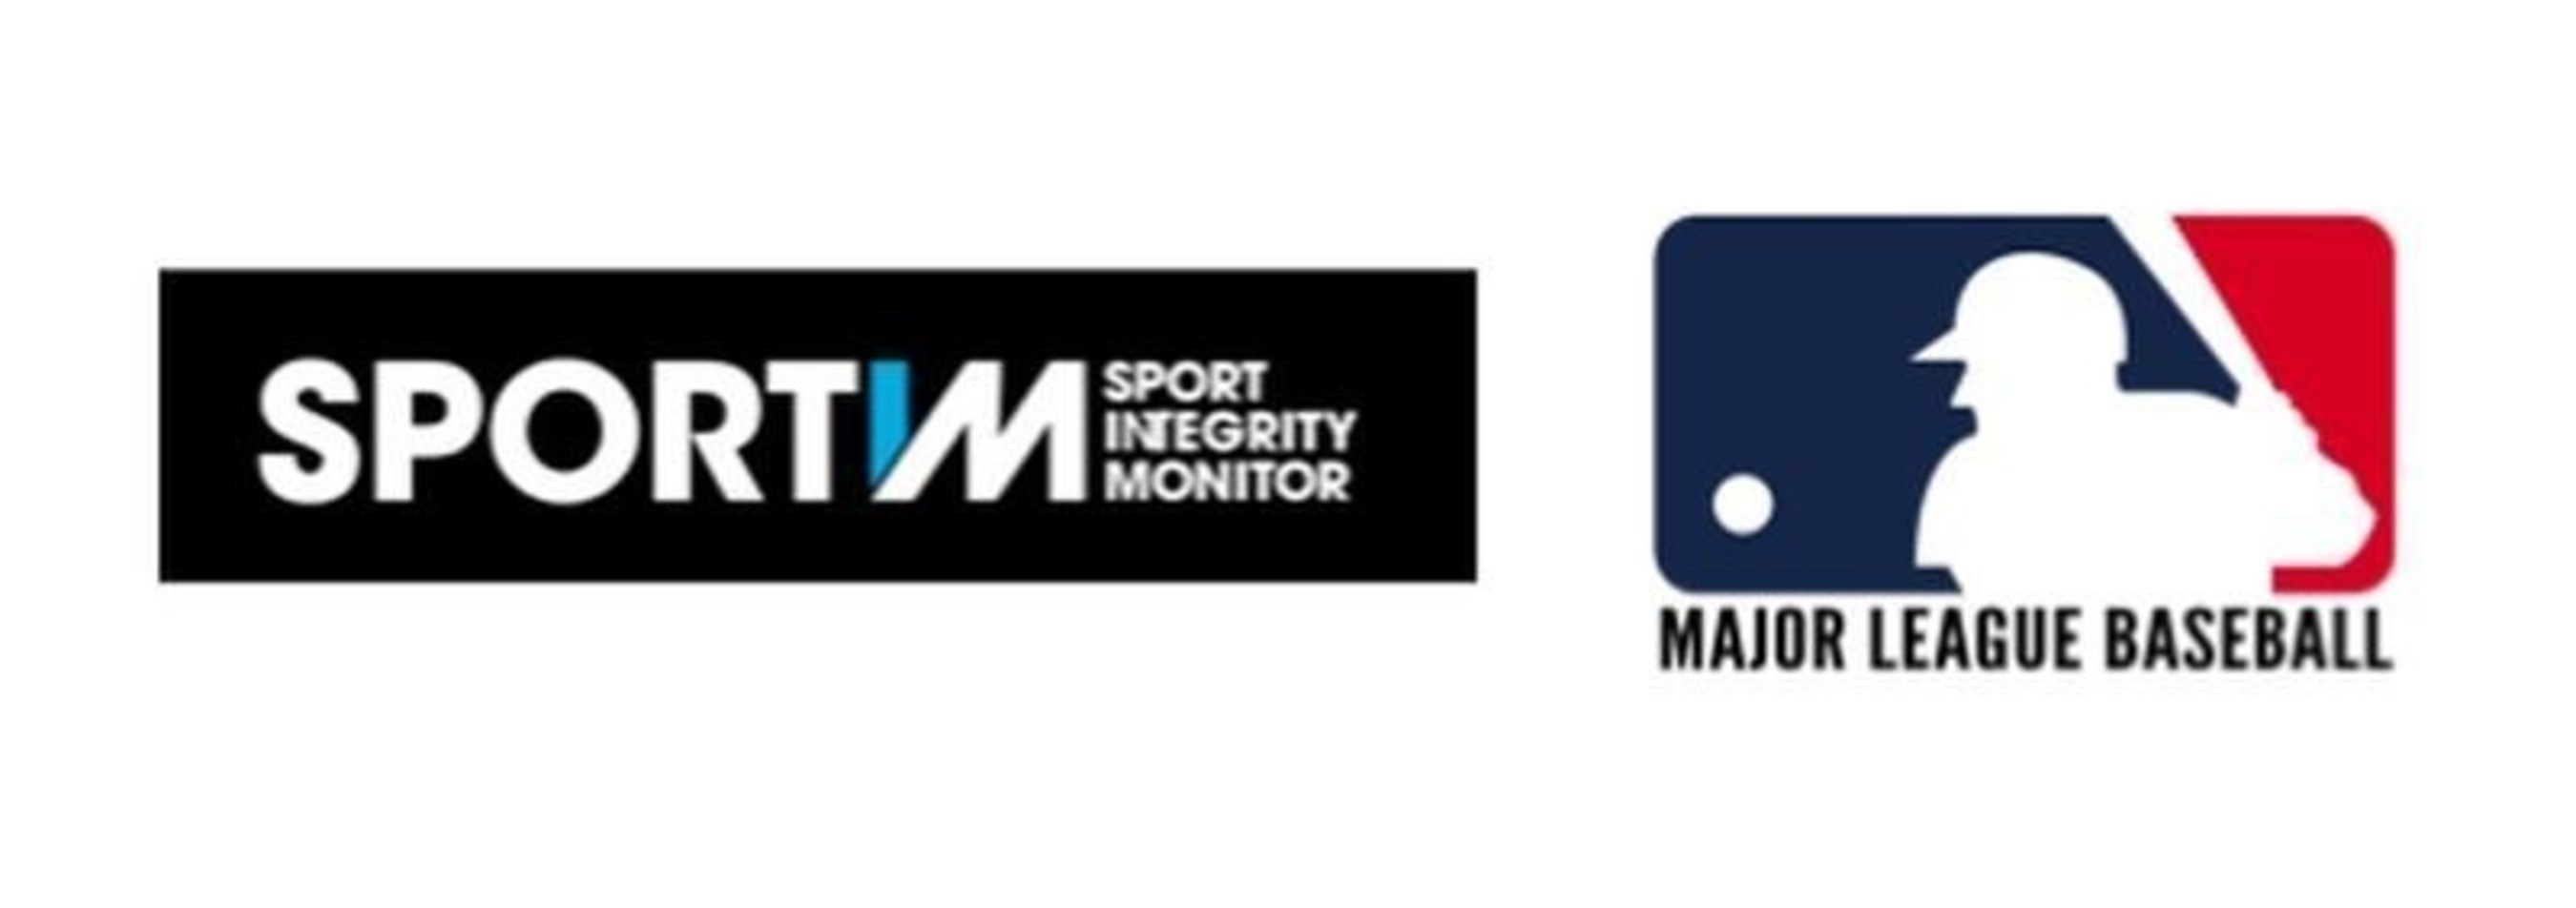 Sport Integrity Monitor and Major League Baseball Announce Landmark Partnership to Protect Integrity of Data Events